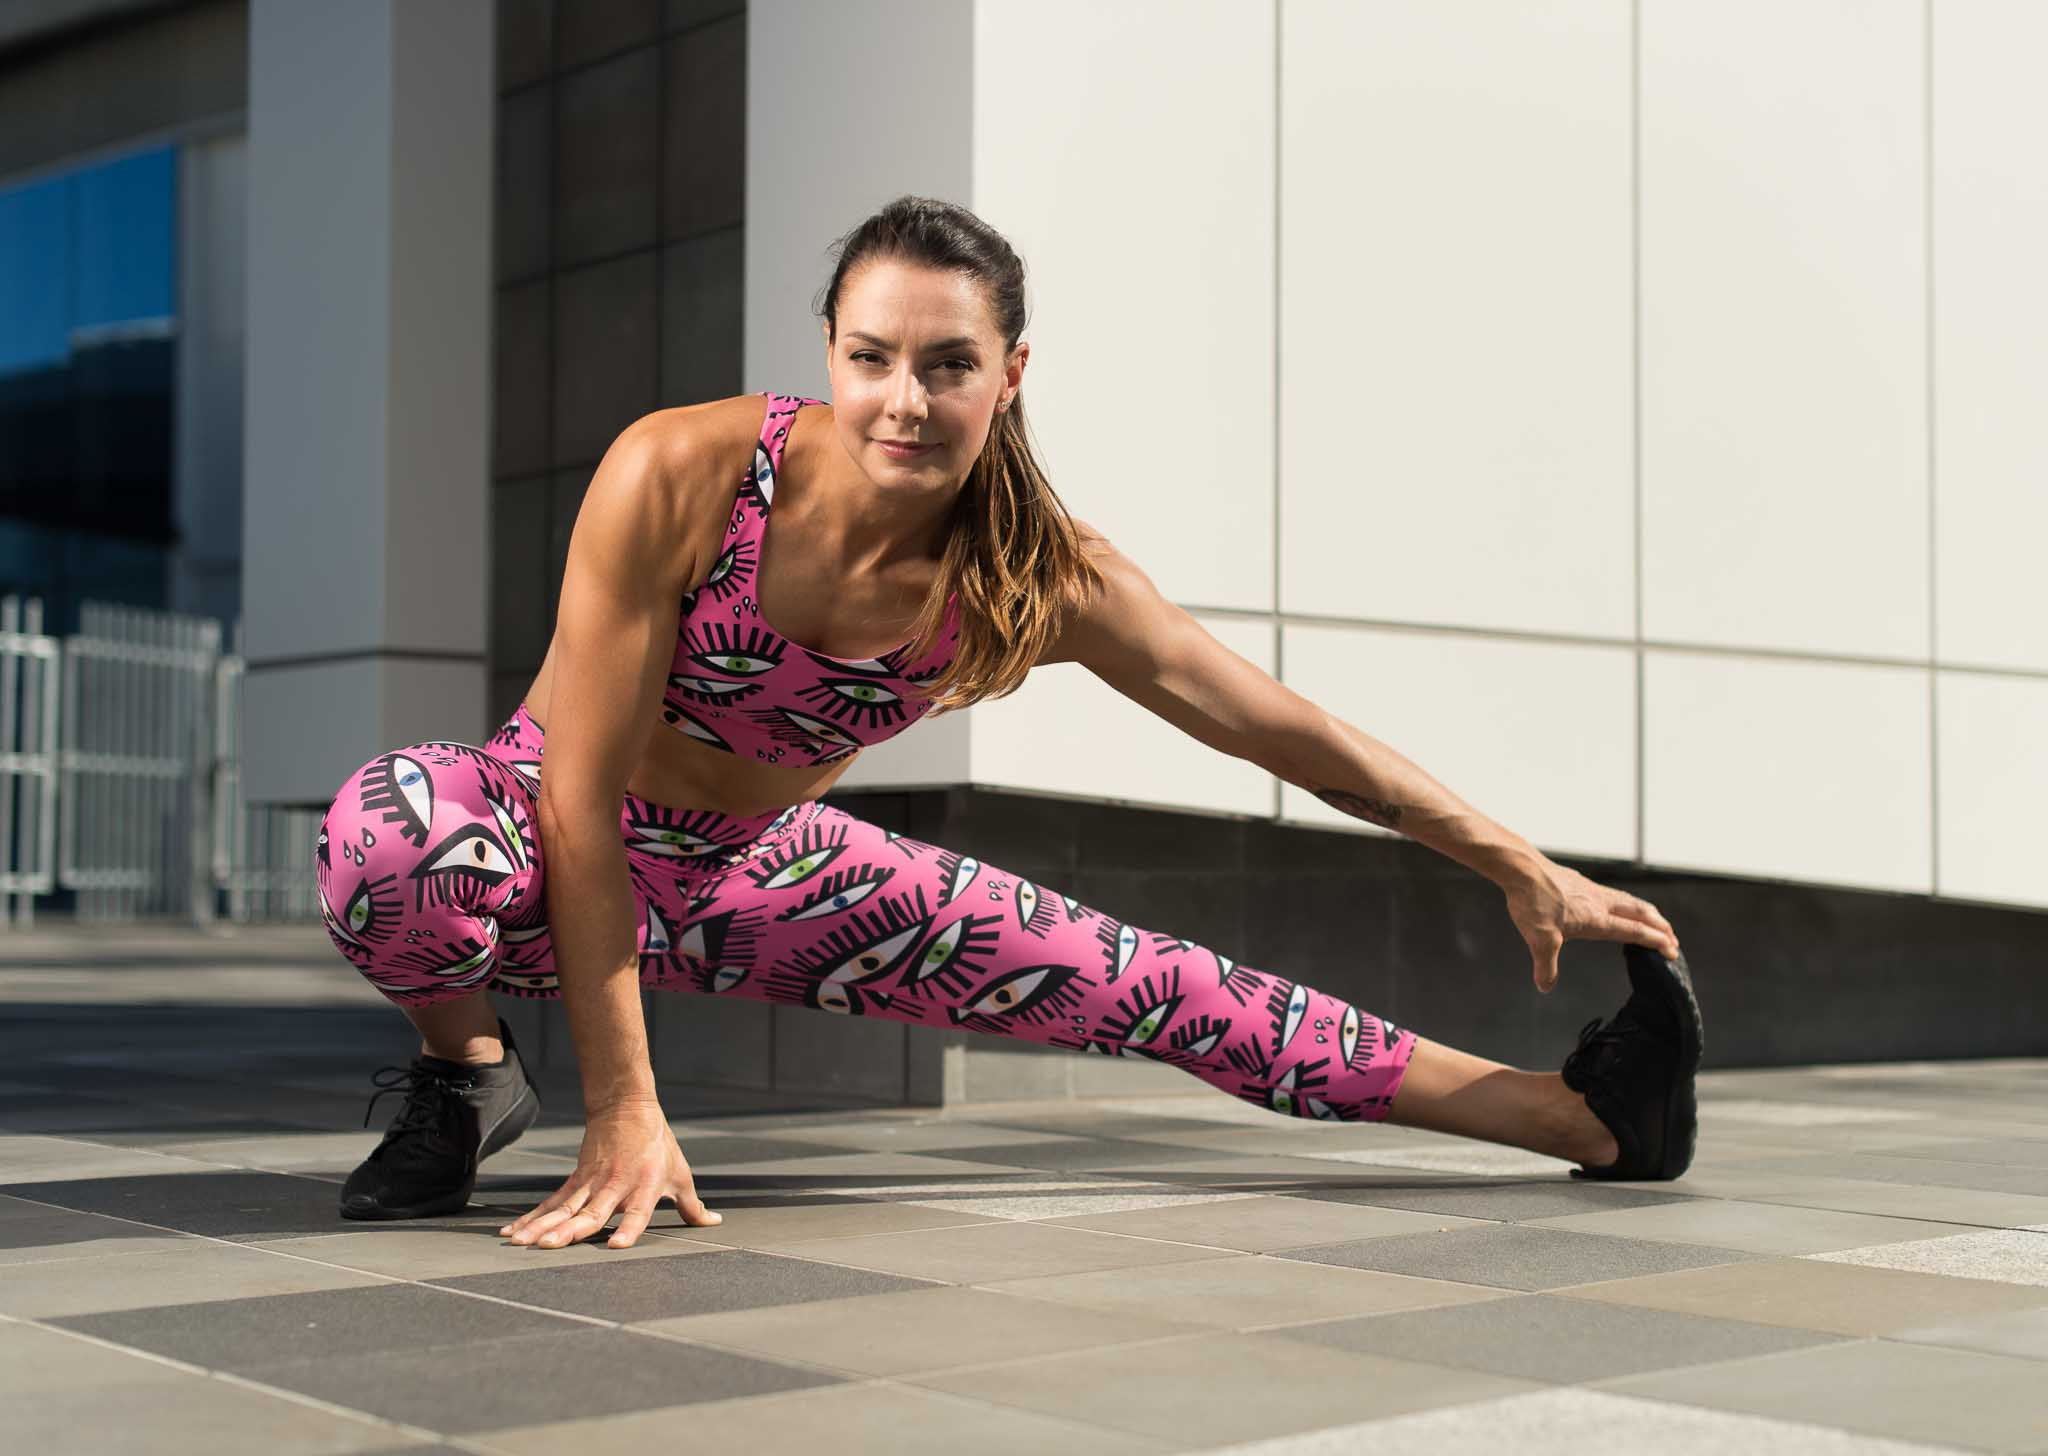 Paula stretching in funky pink fitness garments